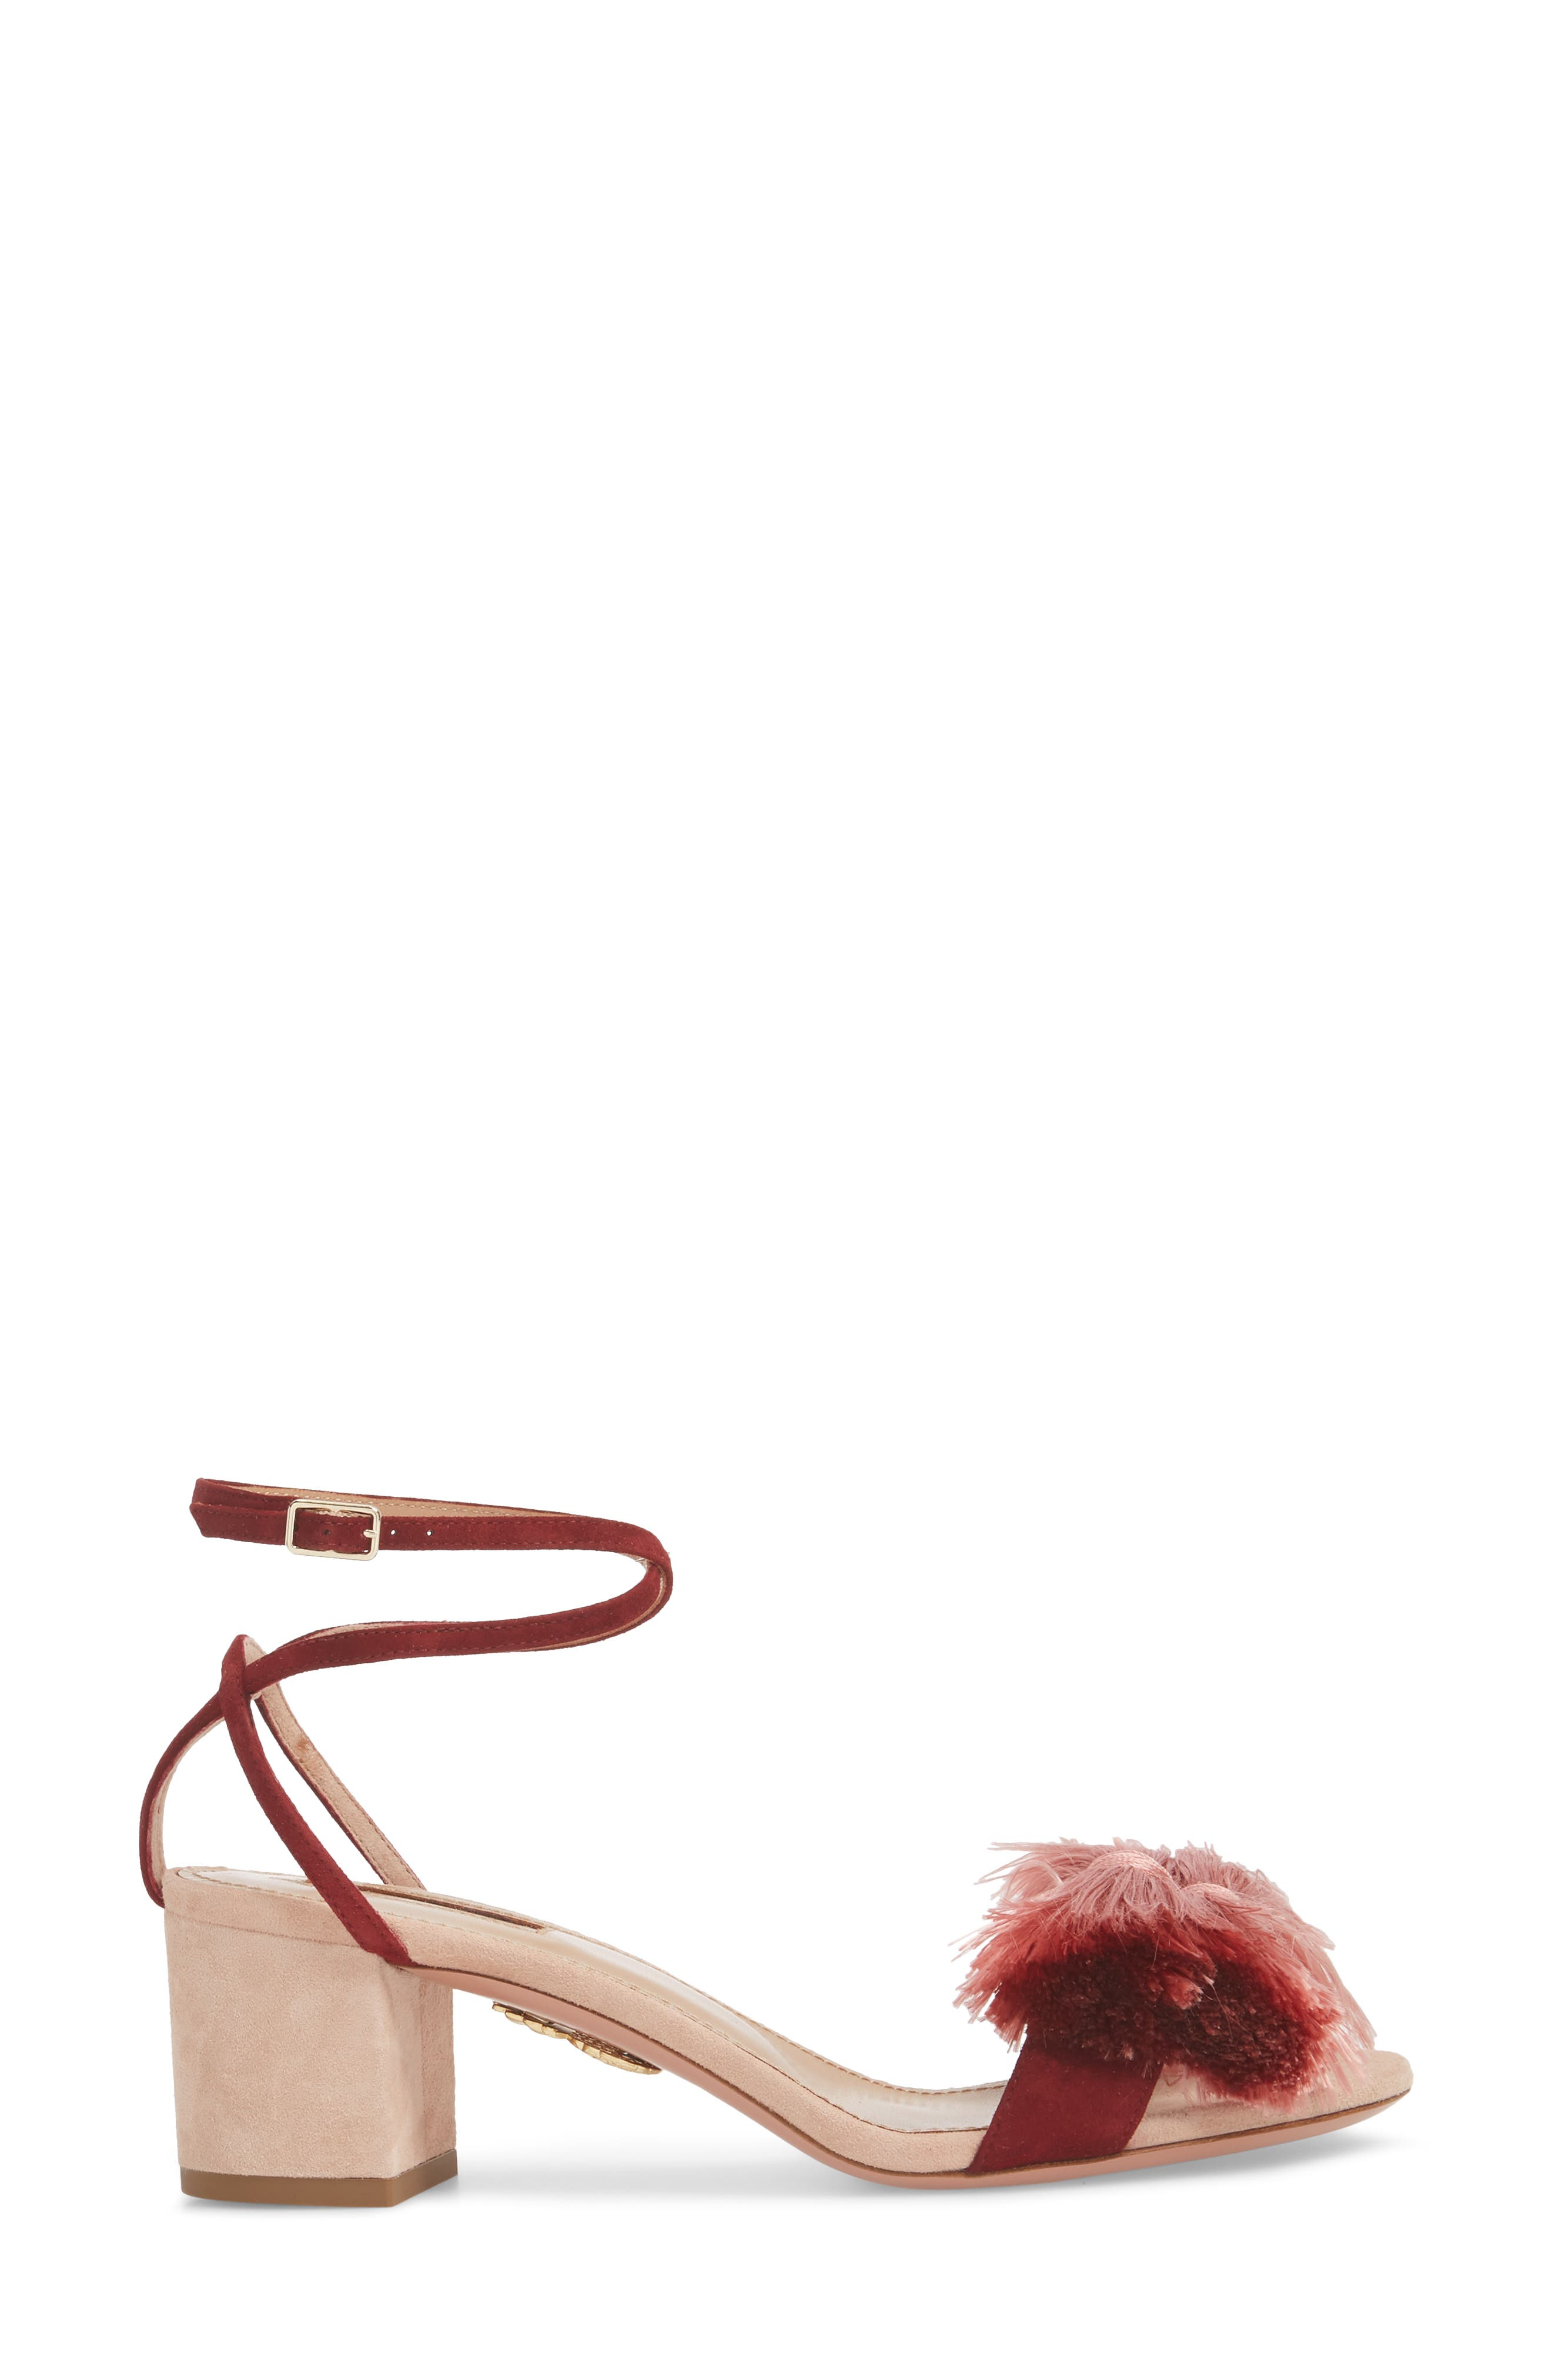 Lotus Blossom Sandal,                             Alternate thumbnail 3, color,                             601